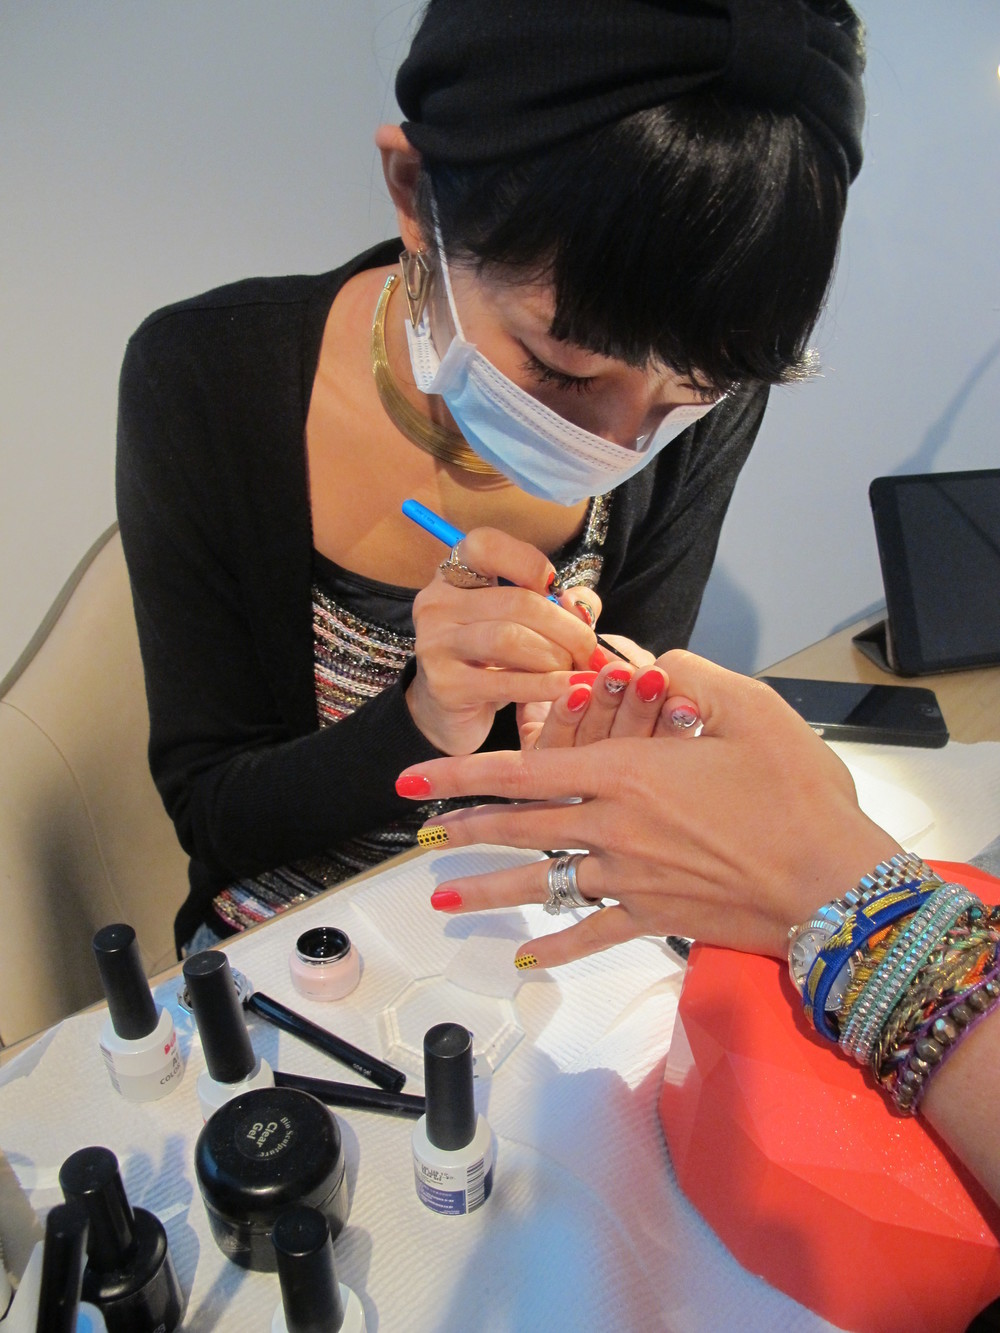 The super talented Hana working on my nails, dot by dot - no stickers here